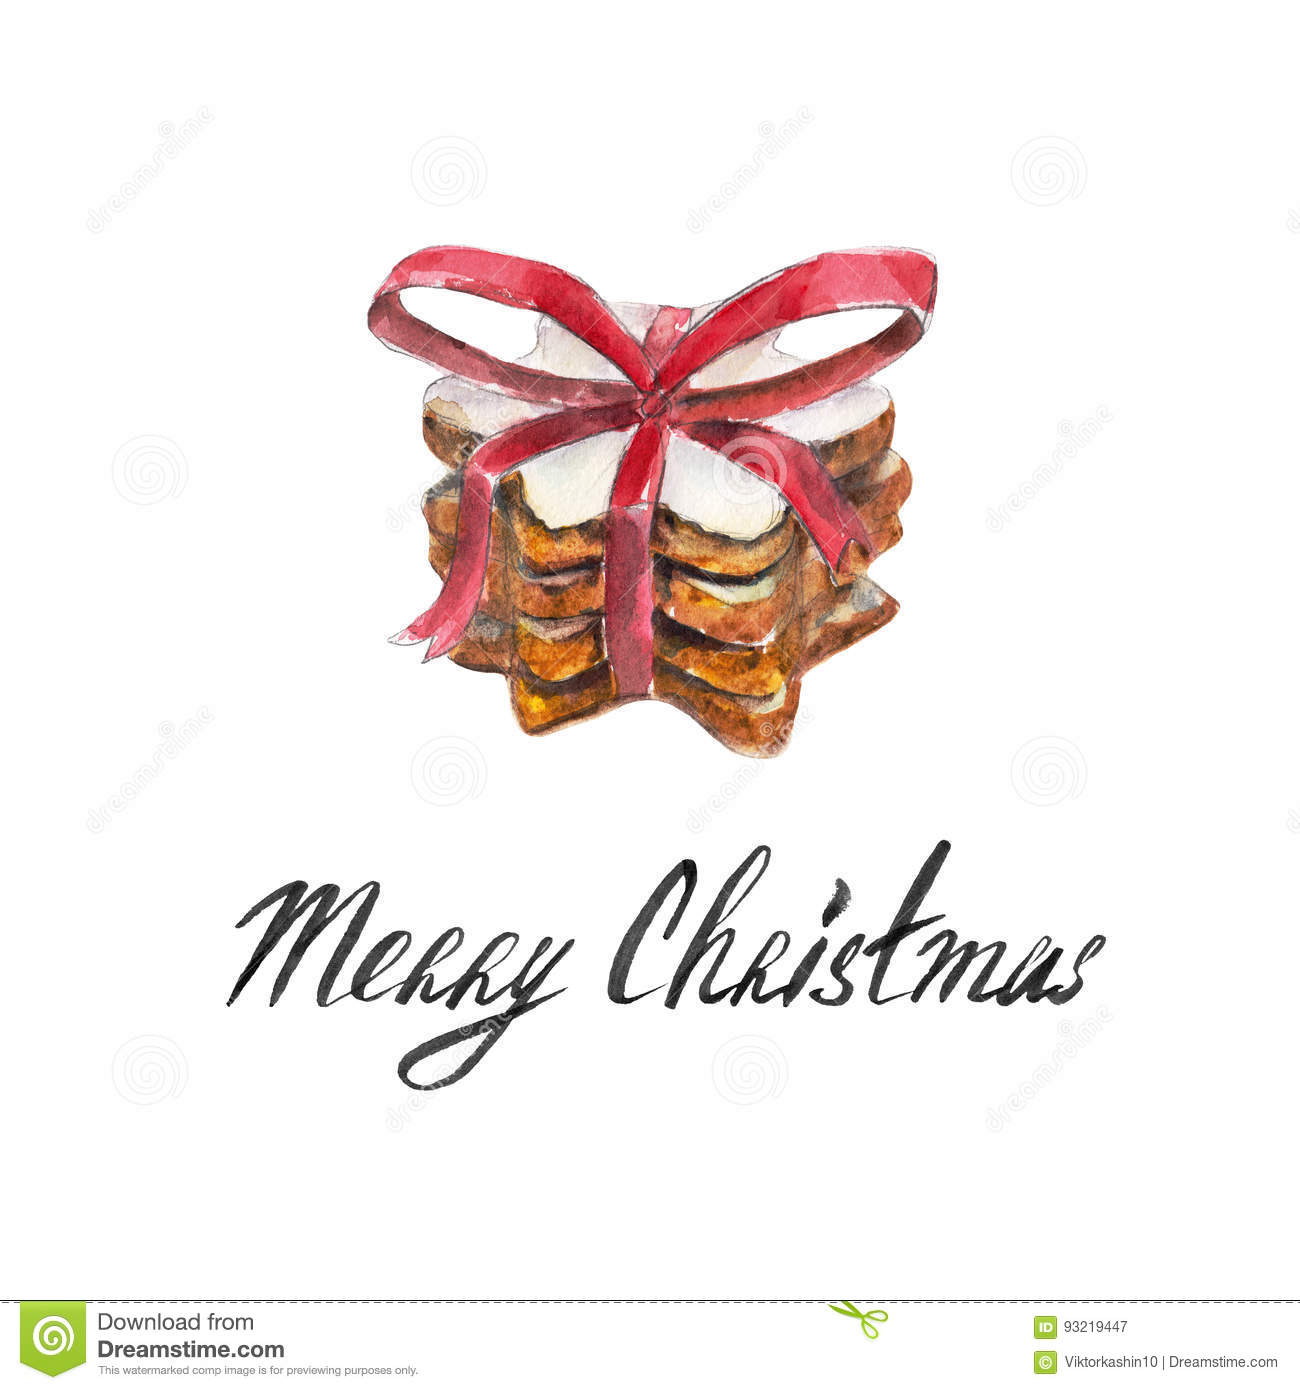 Download The Cookies Stack With Red Ribbon, Bow Isolated On White Background And Lettering `Merry Christmas`, Watercolor Illustration. Stock Illustration - Illustration of health, cookies: 93219447